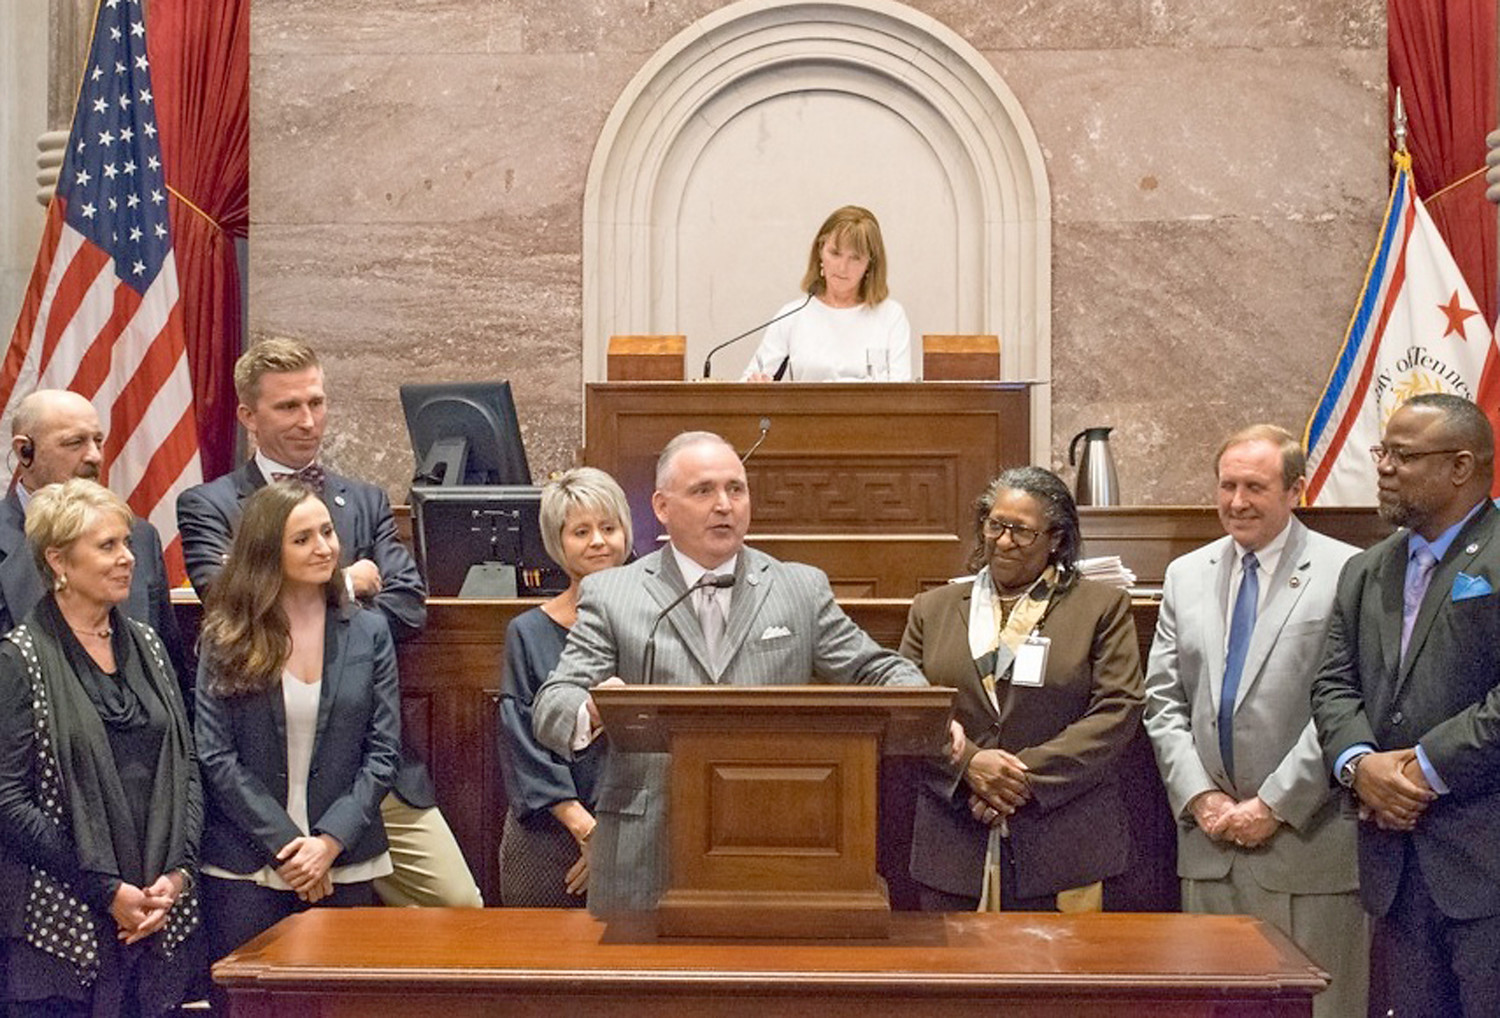 STATE REP. KEVIN BROOKS speaks during a session of the Tennessee House of Representatives, where he is being honored upon his retirement from state government. Brooks was joined by family members for the observance. In the background is House Speaker Beth Harwell (R-Nashville).